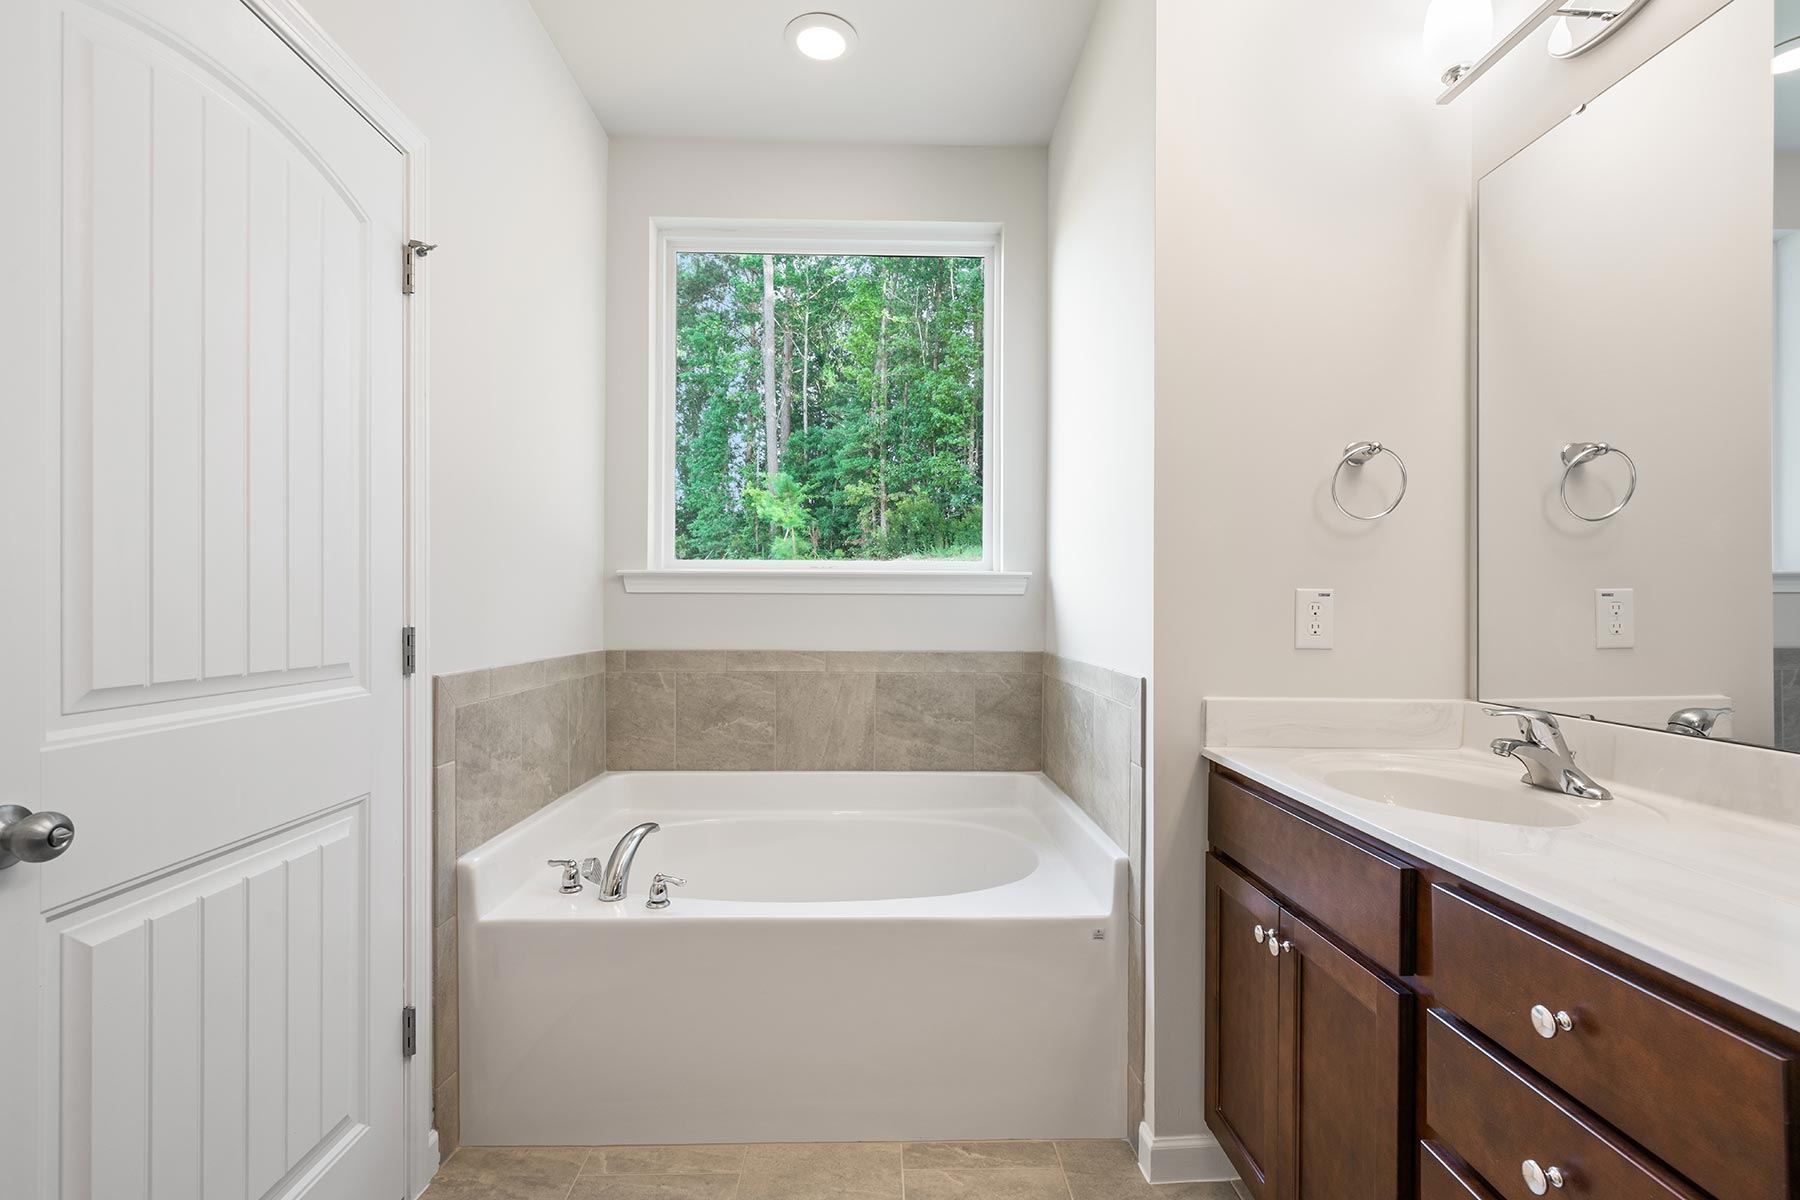 Winston Plan Bath at Ballentine Place in Holly Springs North Carolina by Mattamy Homes